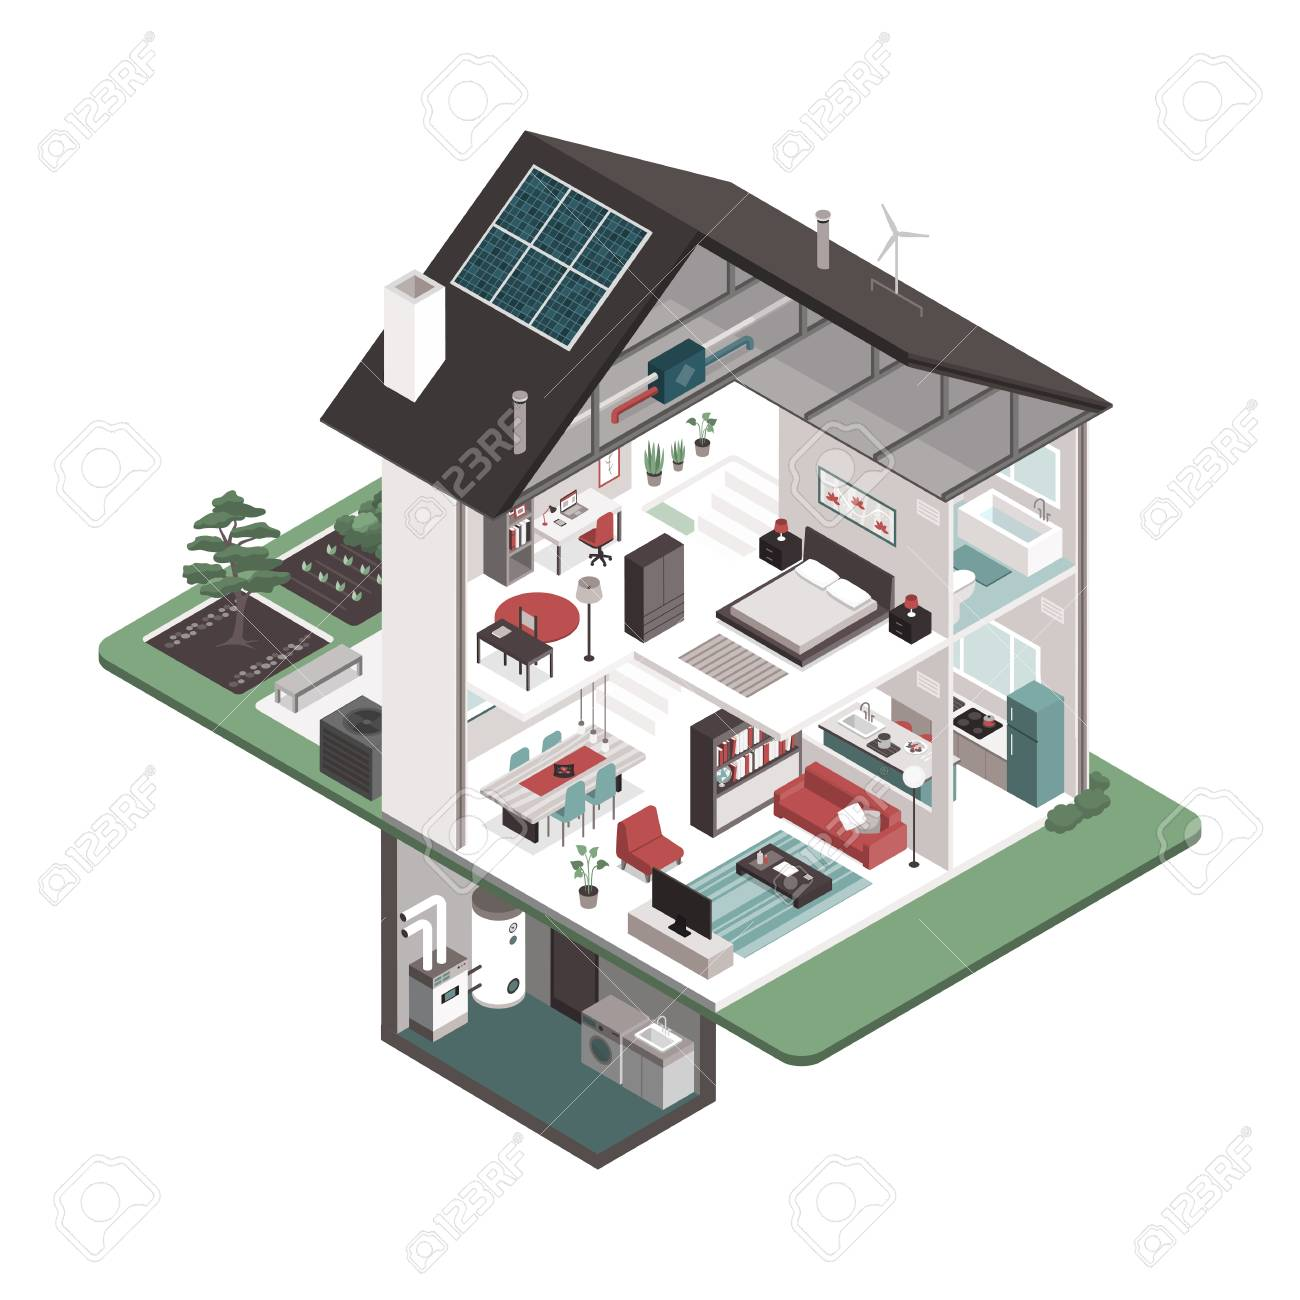 Contemporary Energy Efficient Isometric House Cross Section And Saver Circuit Room Interiors On White Background Real Estate